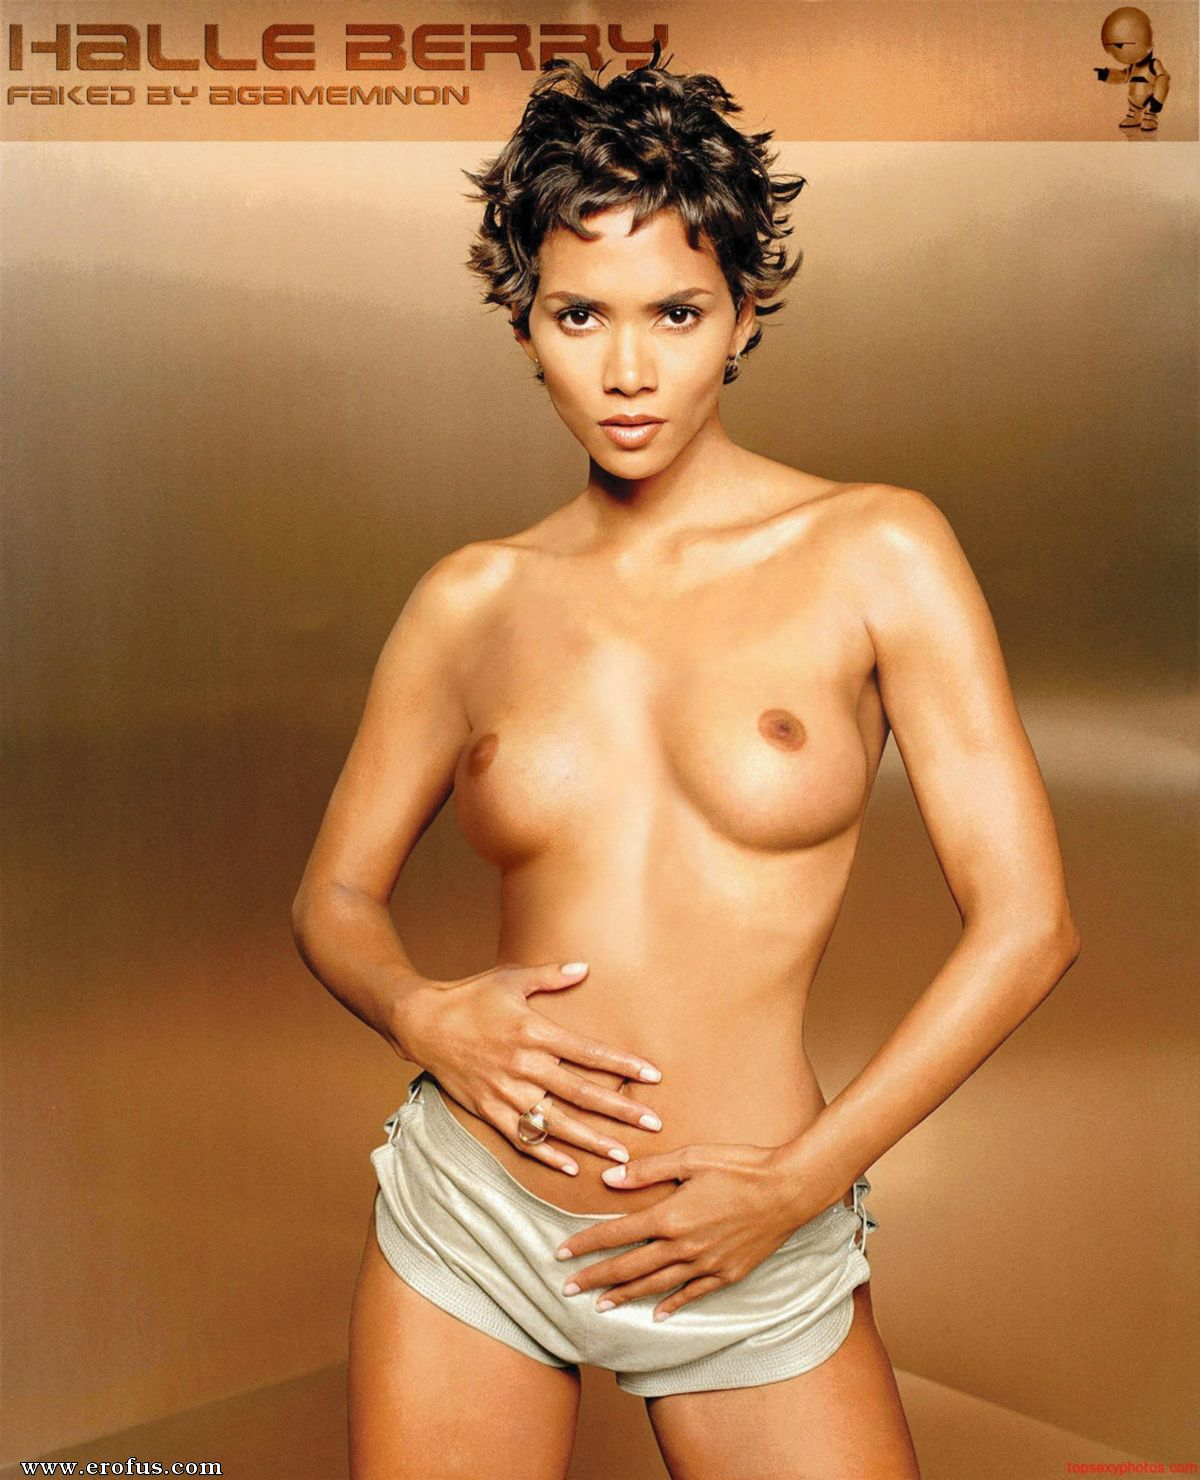 Halle berry big ass and naked photos